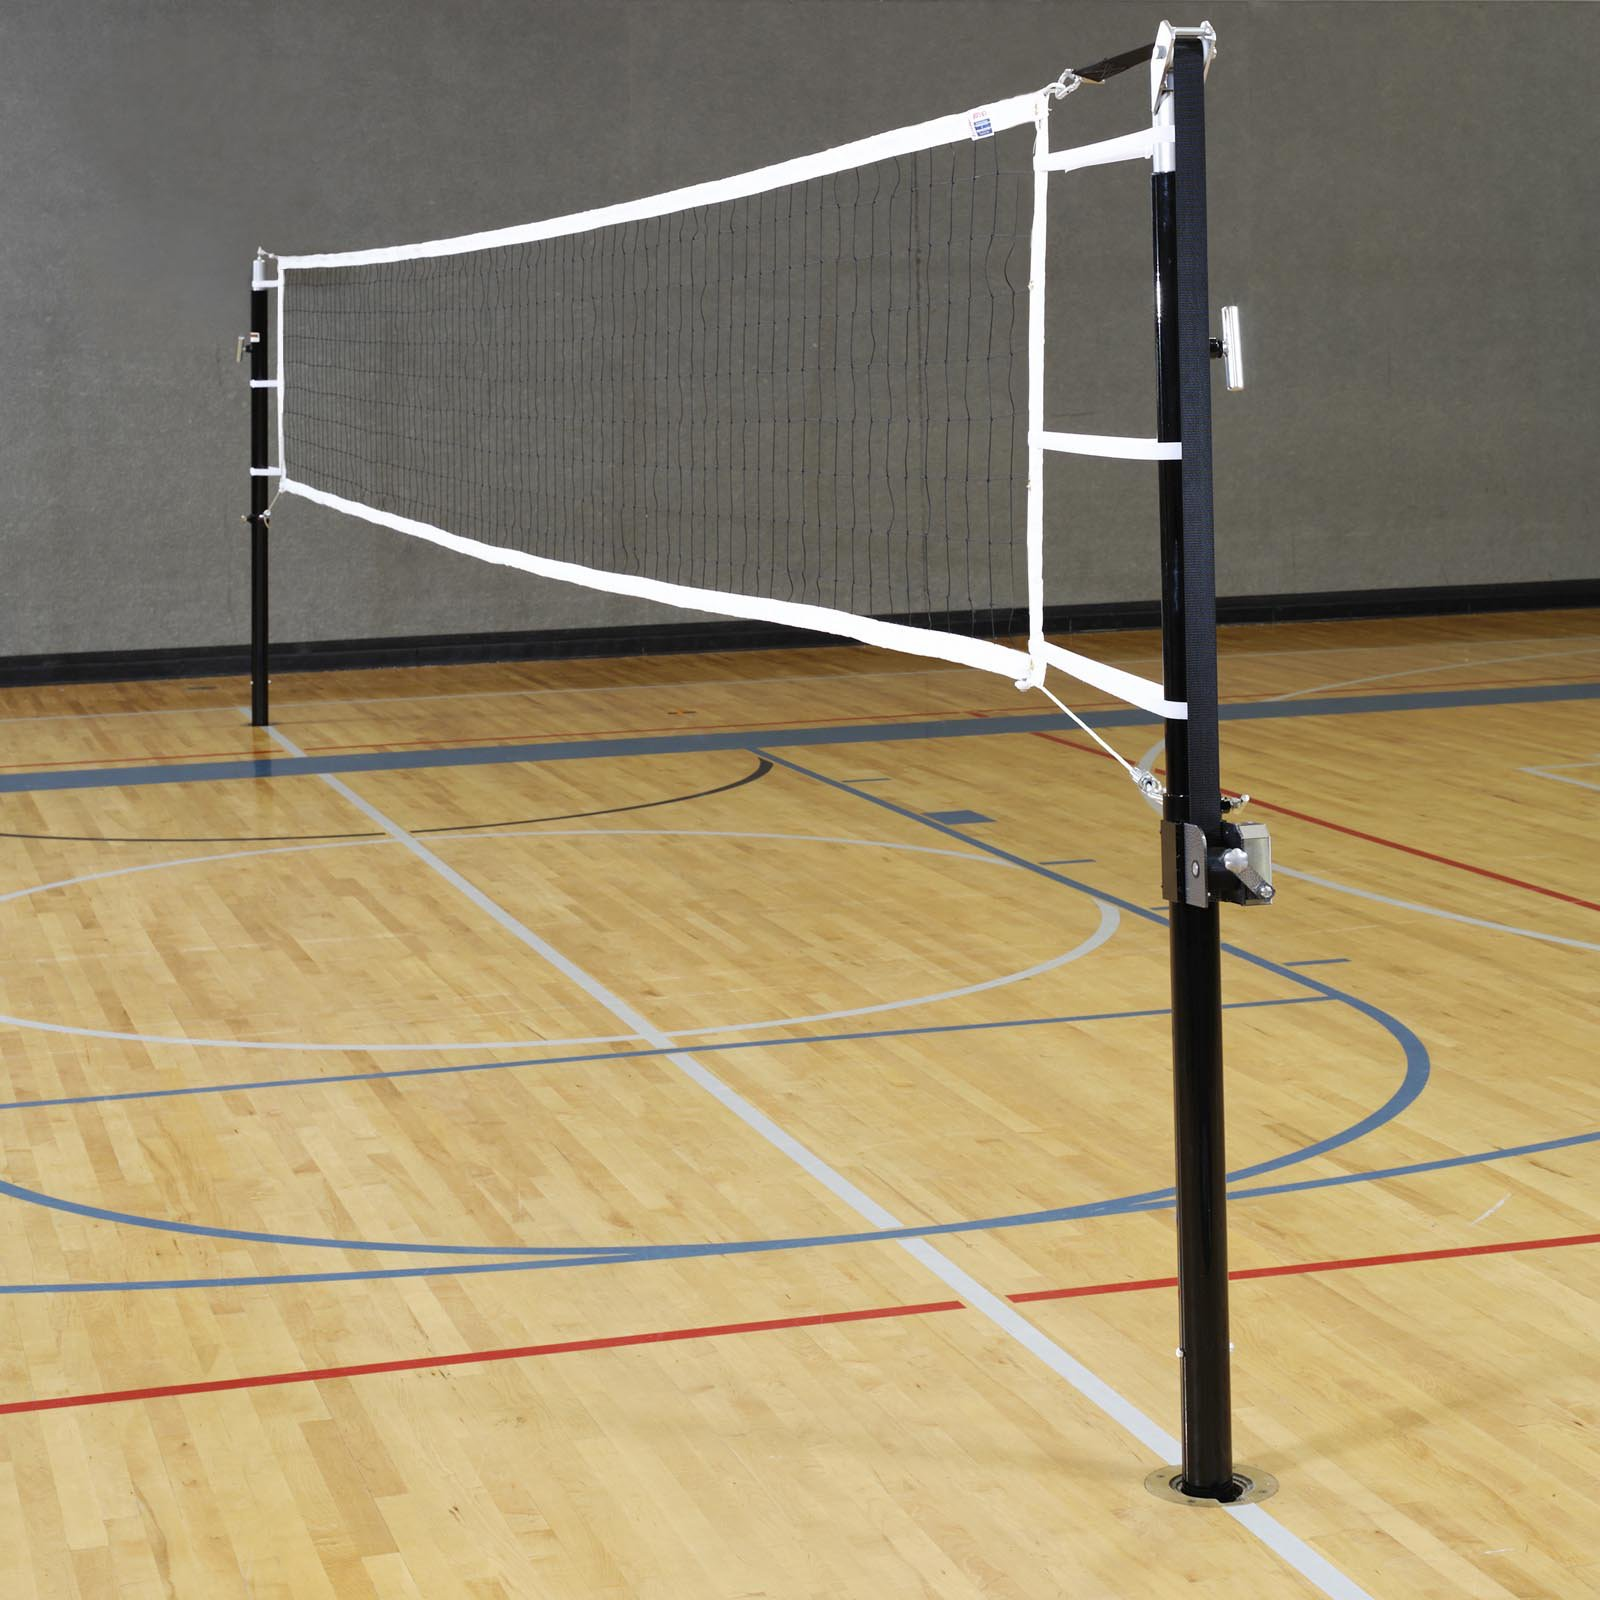 Stackhouse Regulation Volleyball Standards & Net System Steel by Stackhouse Athletic Equipment Inc